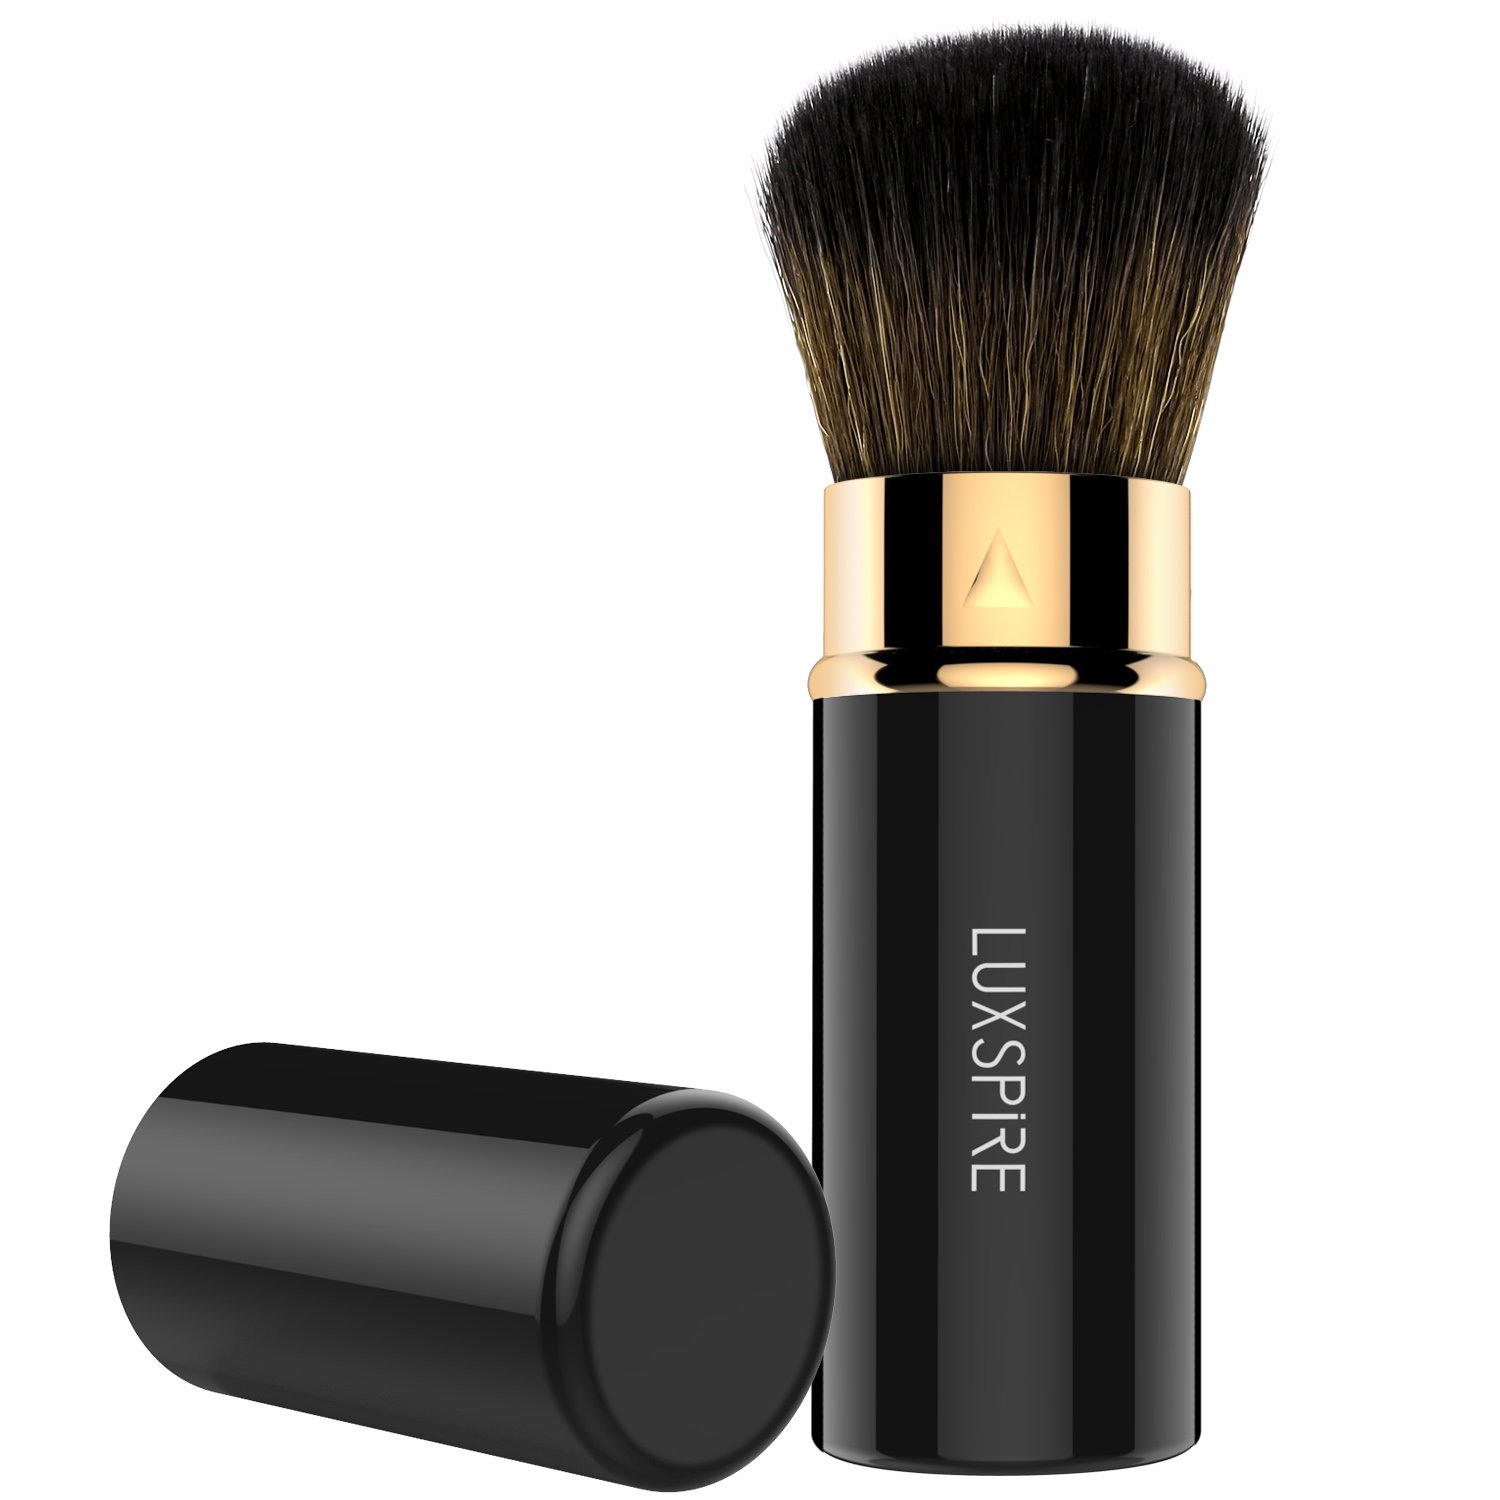 Luxspire Retractable Makeup Blush Brushes, Professional Single Handle Kabuki Brush Soft Face Mineral Powder Foundation Blush Brush Cosmetics Make Up Tool, Black & Rose Gold